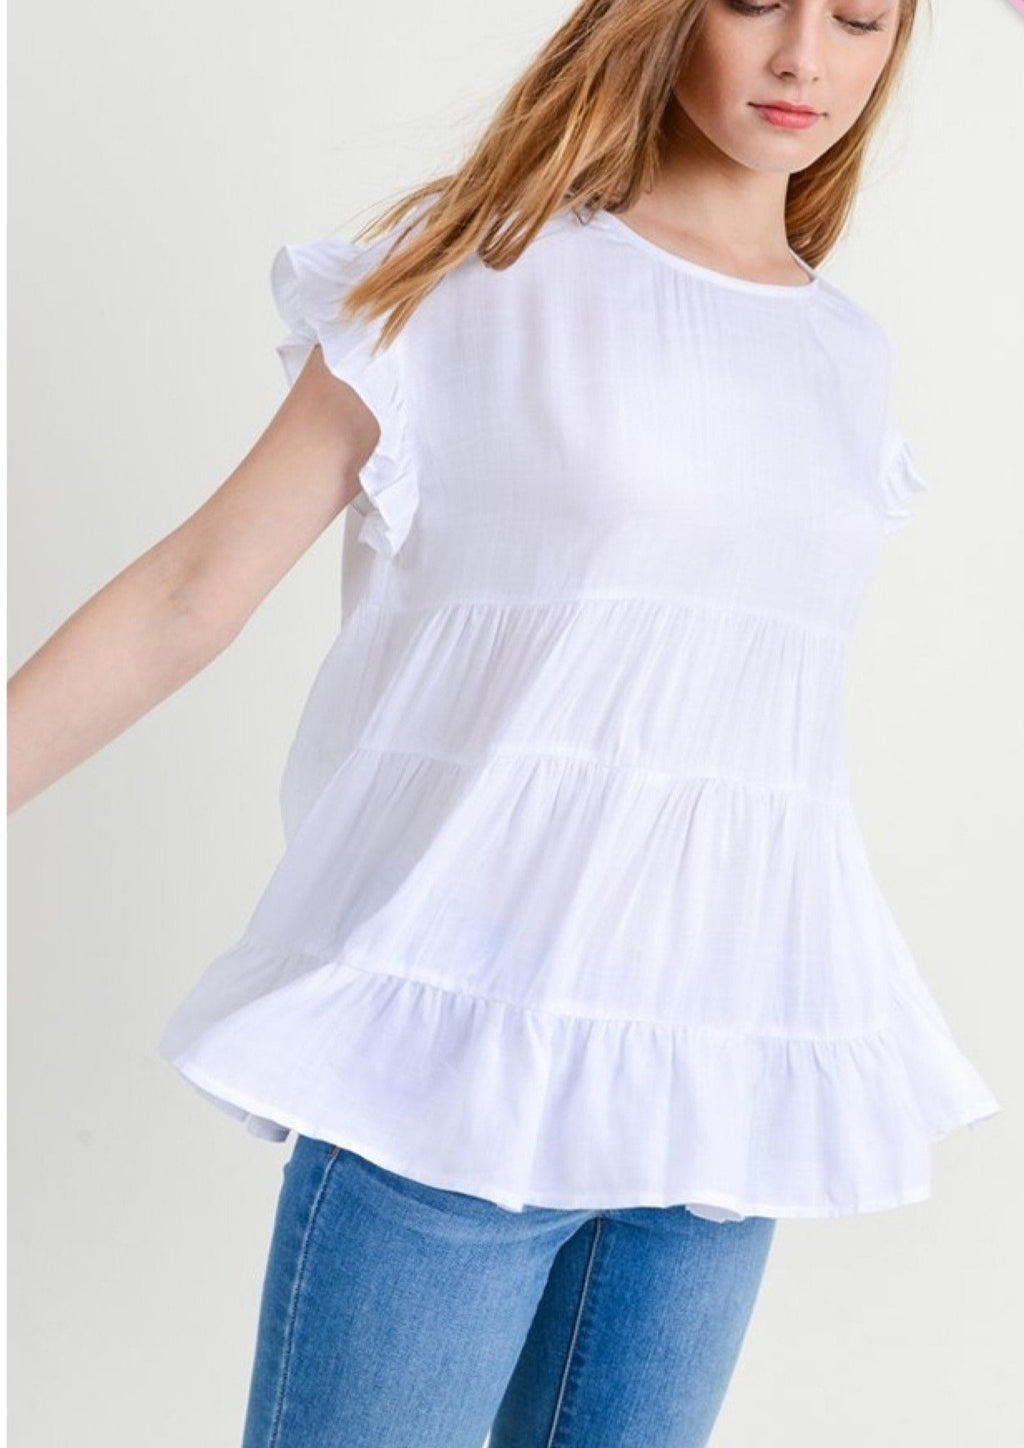 Ruffle Blouse - White